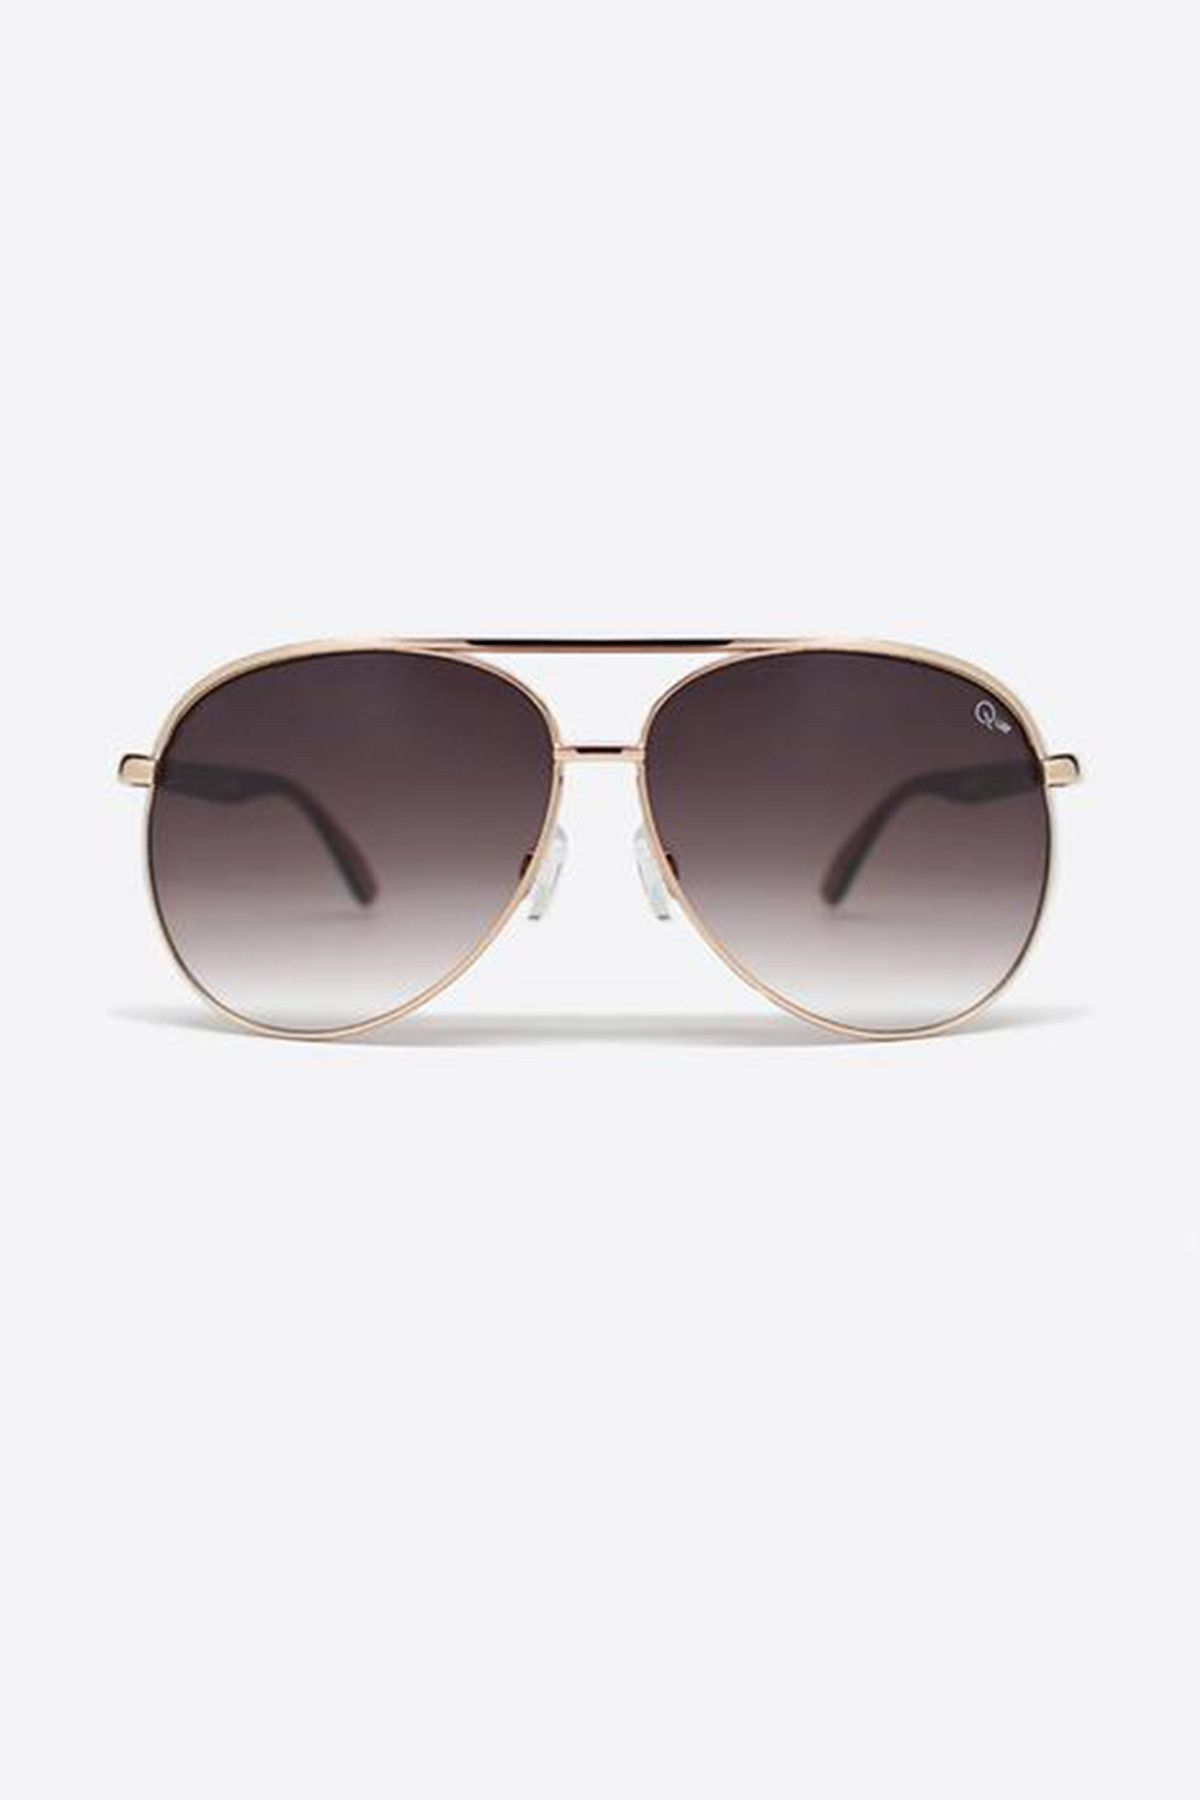 0184fdc6cb591 Macaw Sunglasses by Quay Australia. Metal frame sunglasses with  polycarbonate lens ...